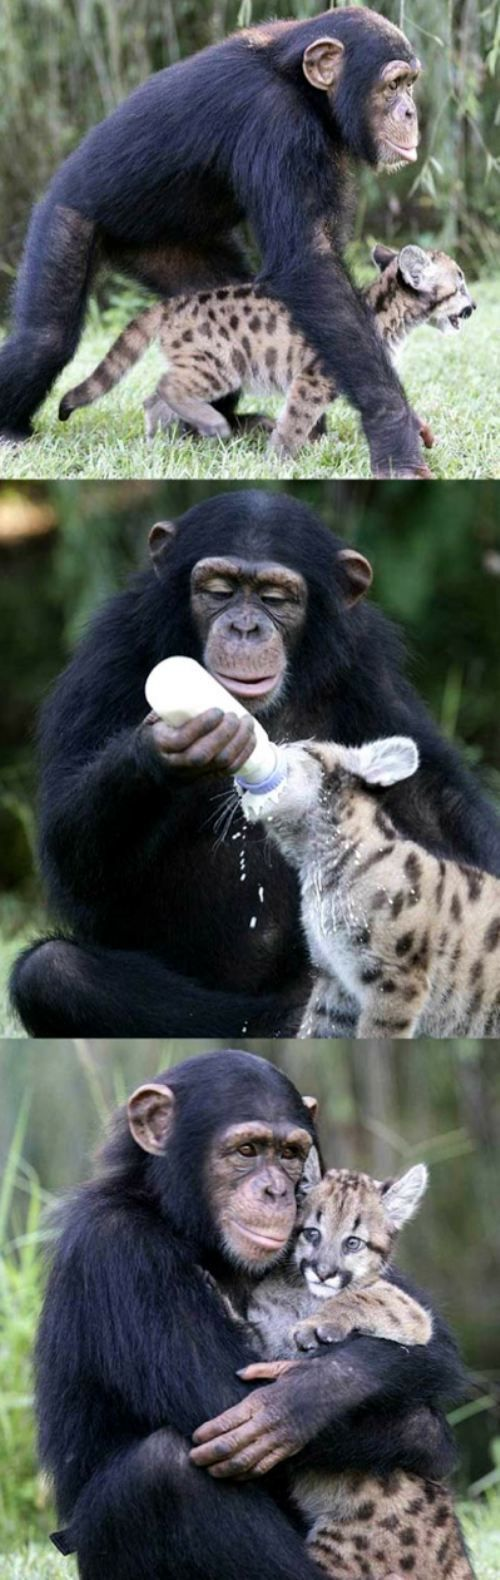 The best images about animals on pinterest see more ideas